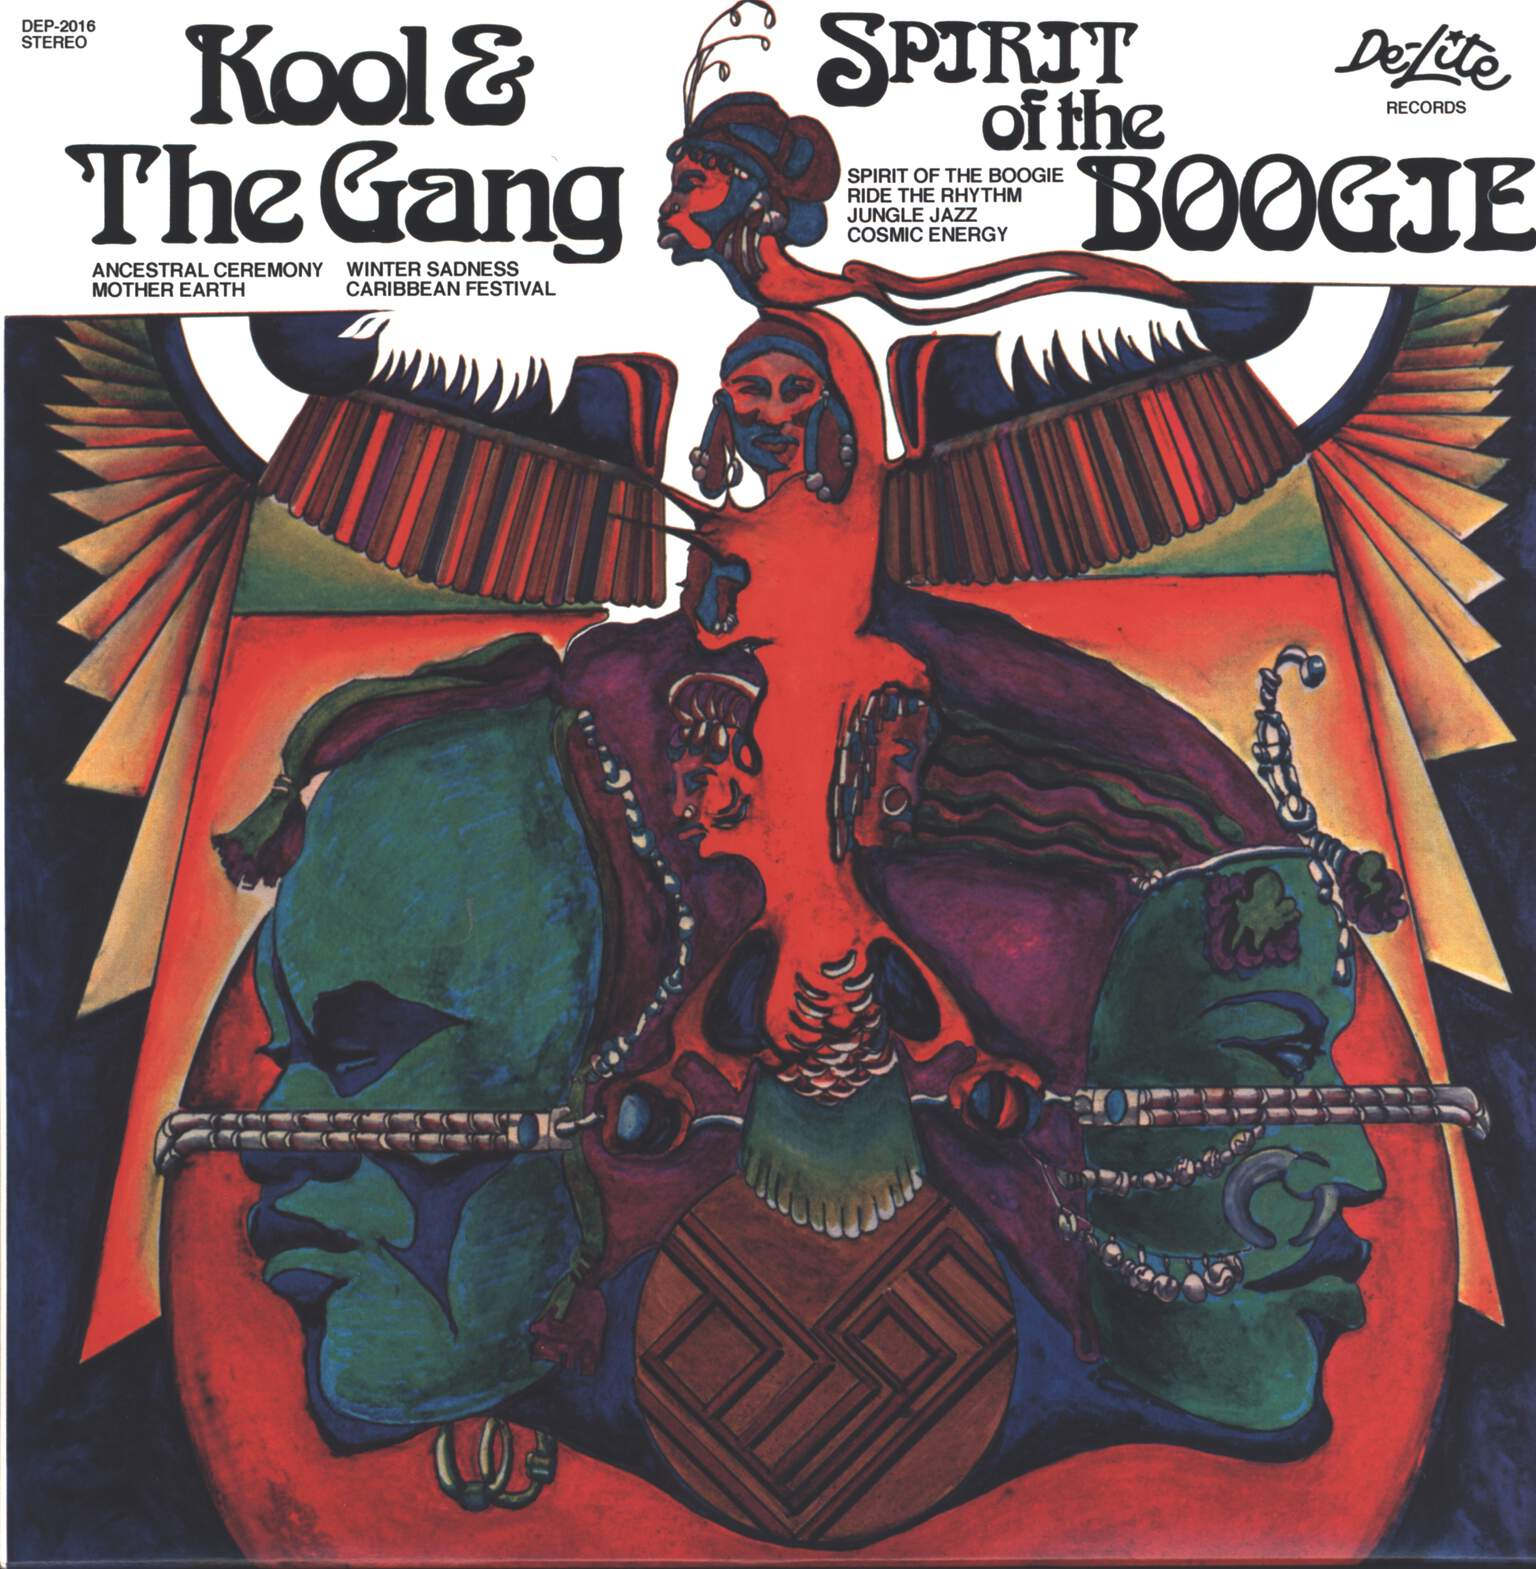 Kool & the Gang: Spirit Of The Boogie, LP (Vinyl)